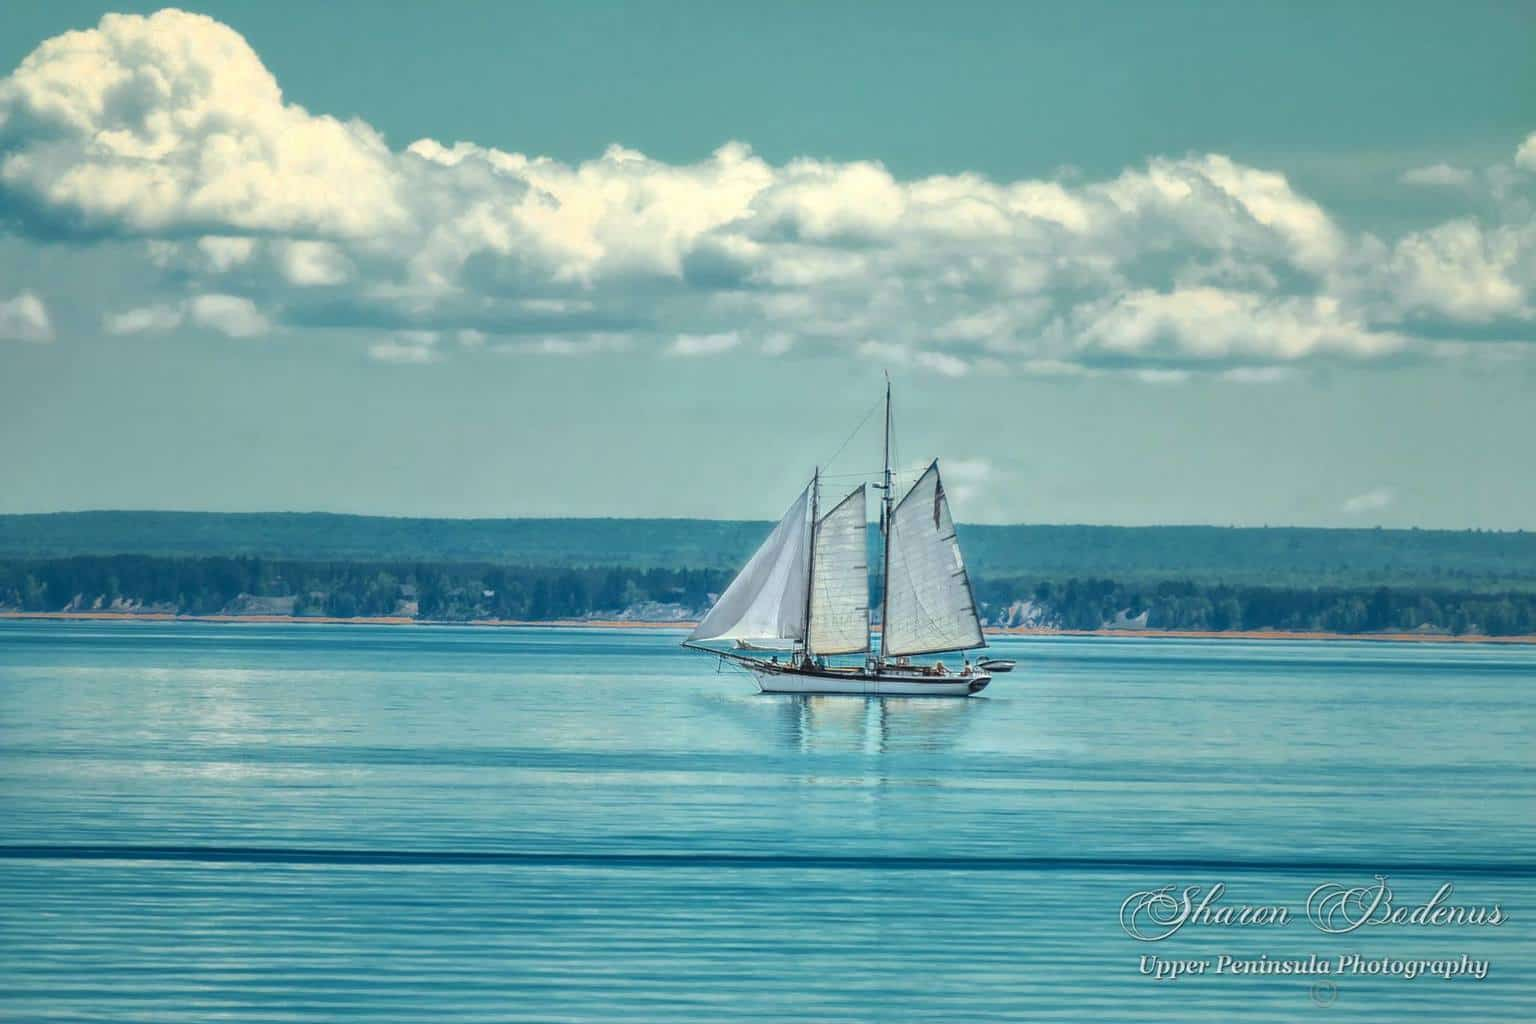 Wow, how would you like to be out there sailing on this awesome boat!! Lake Superior yesterday. I only had about 5 min to photograph this boat over by the lighthouse. Added a bit of a vintage look to it since it was midday and very contrast. Have a wonderful and blessed day everyone!